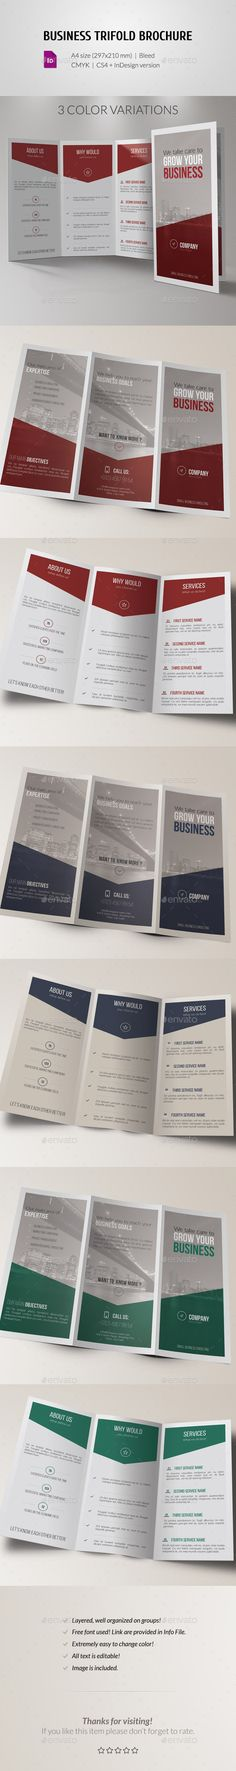 Corporate Business Trifold Brochure - Corporate Brochures